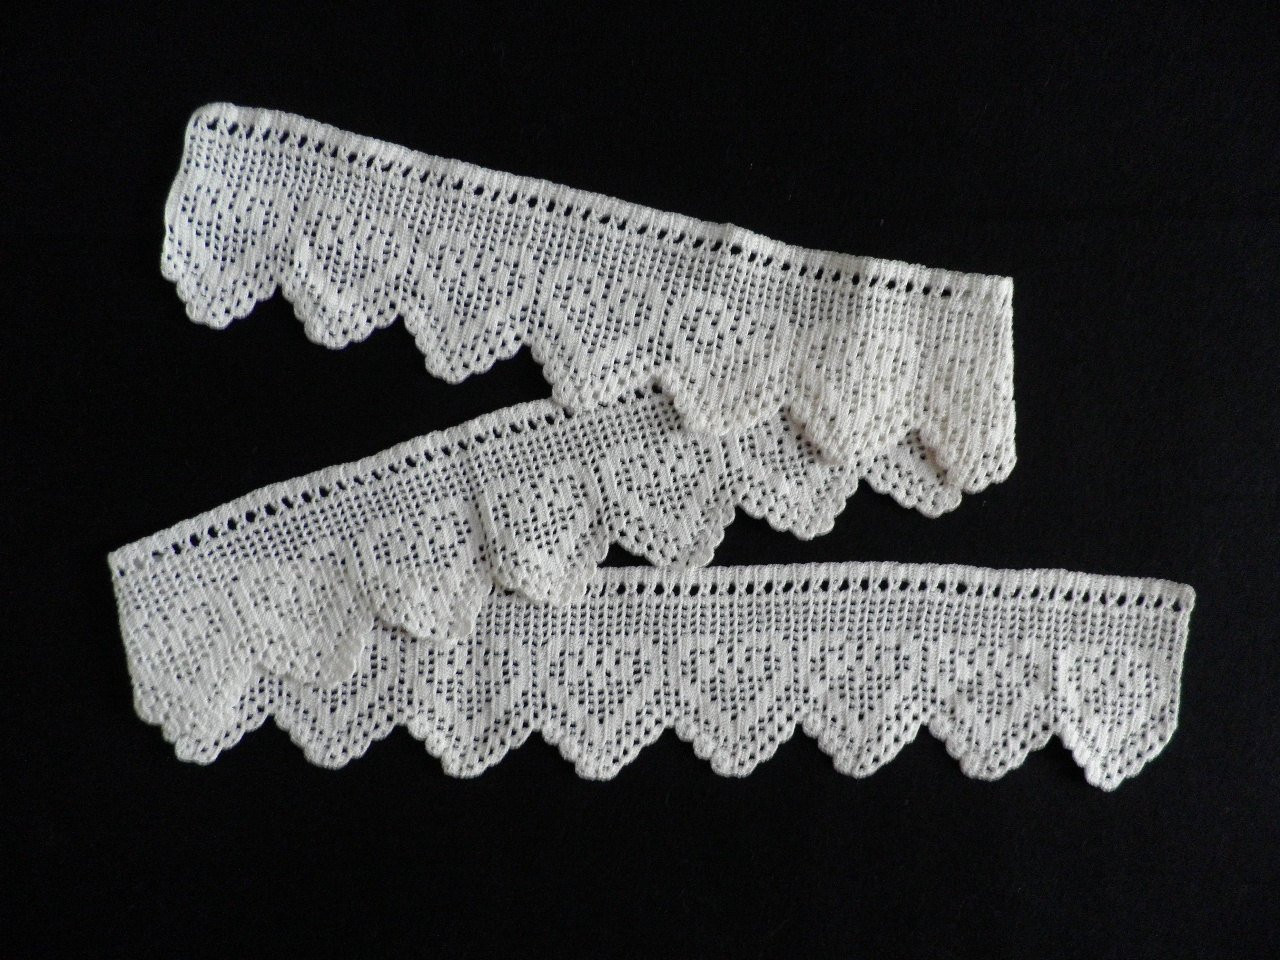 Crochet Lace Edging Fresh Crocheted Lace Edging Vintage White Heart Pattern Of Charming 48 Images Crochet Lace Edging